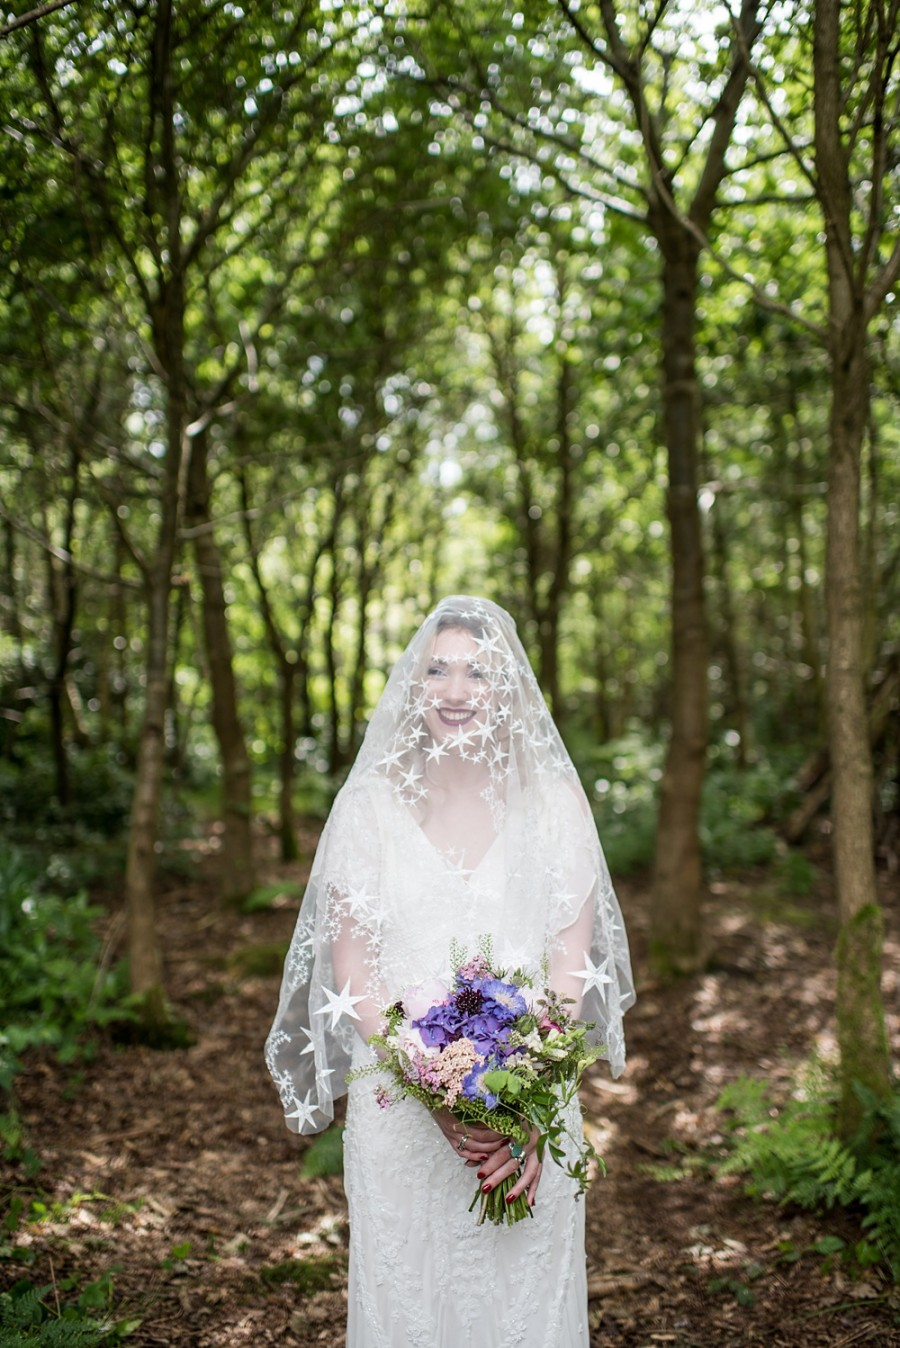 A Fantasy Woodland Bridal Shoot For A Bohemian Inspired Bride